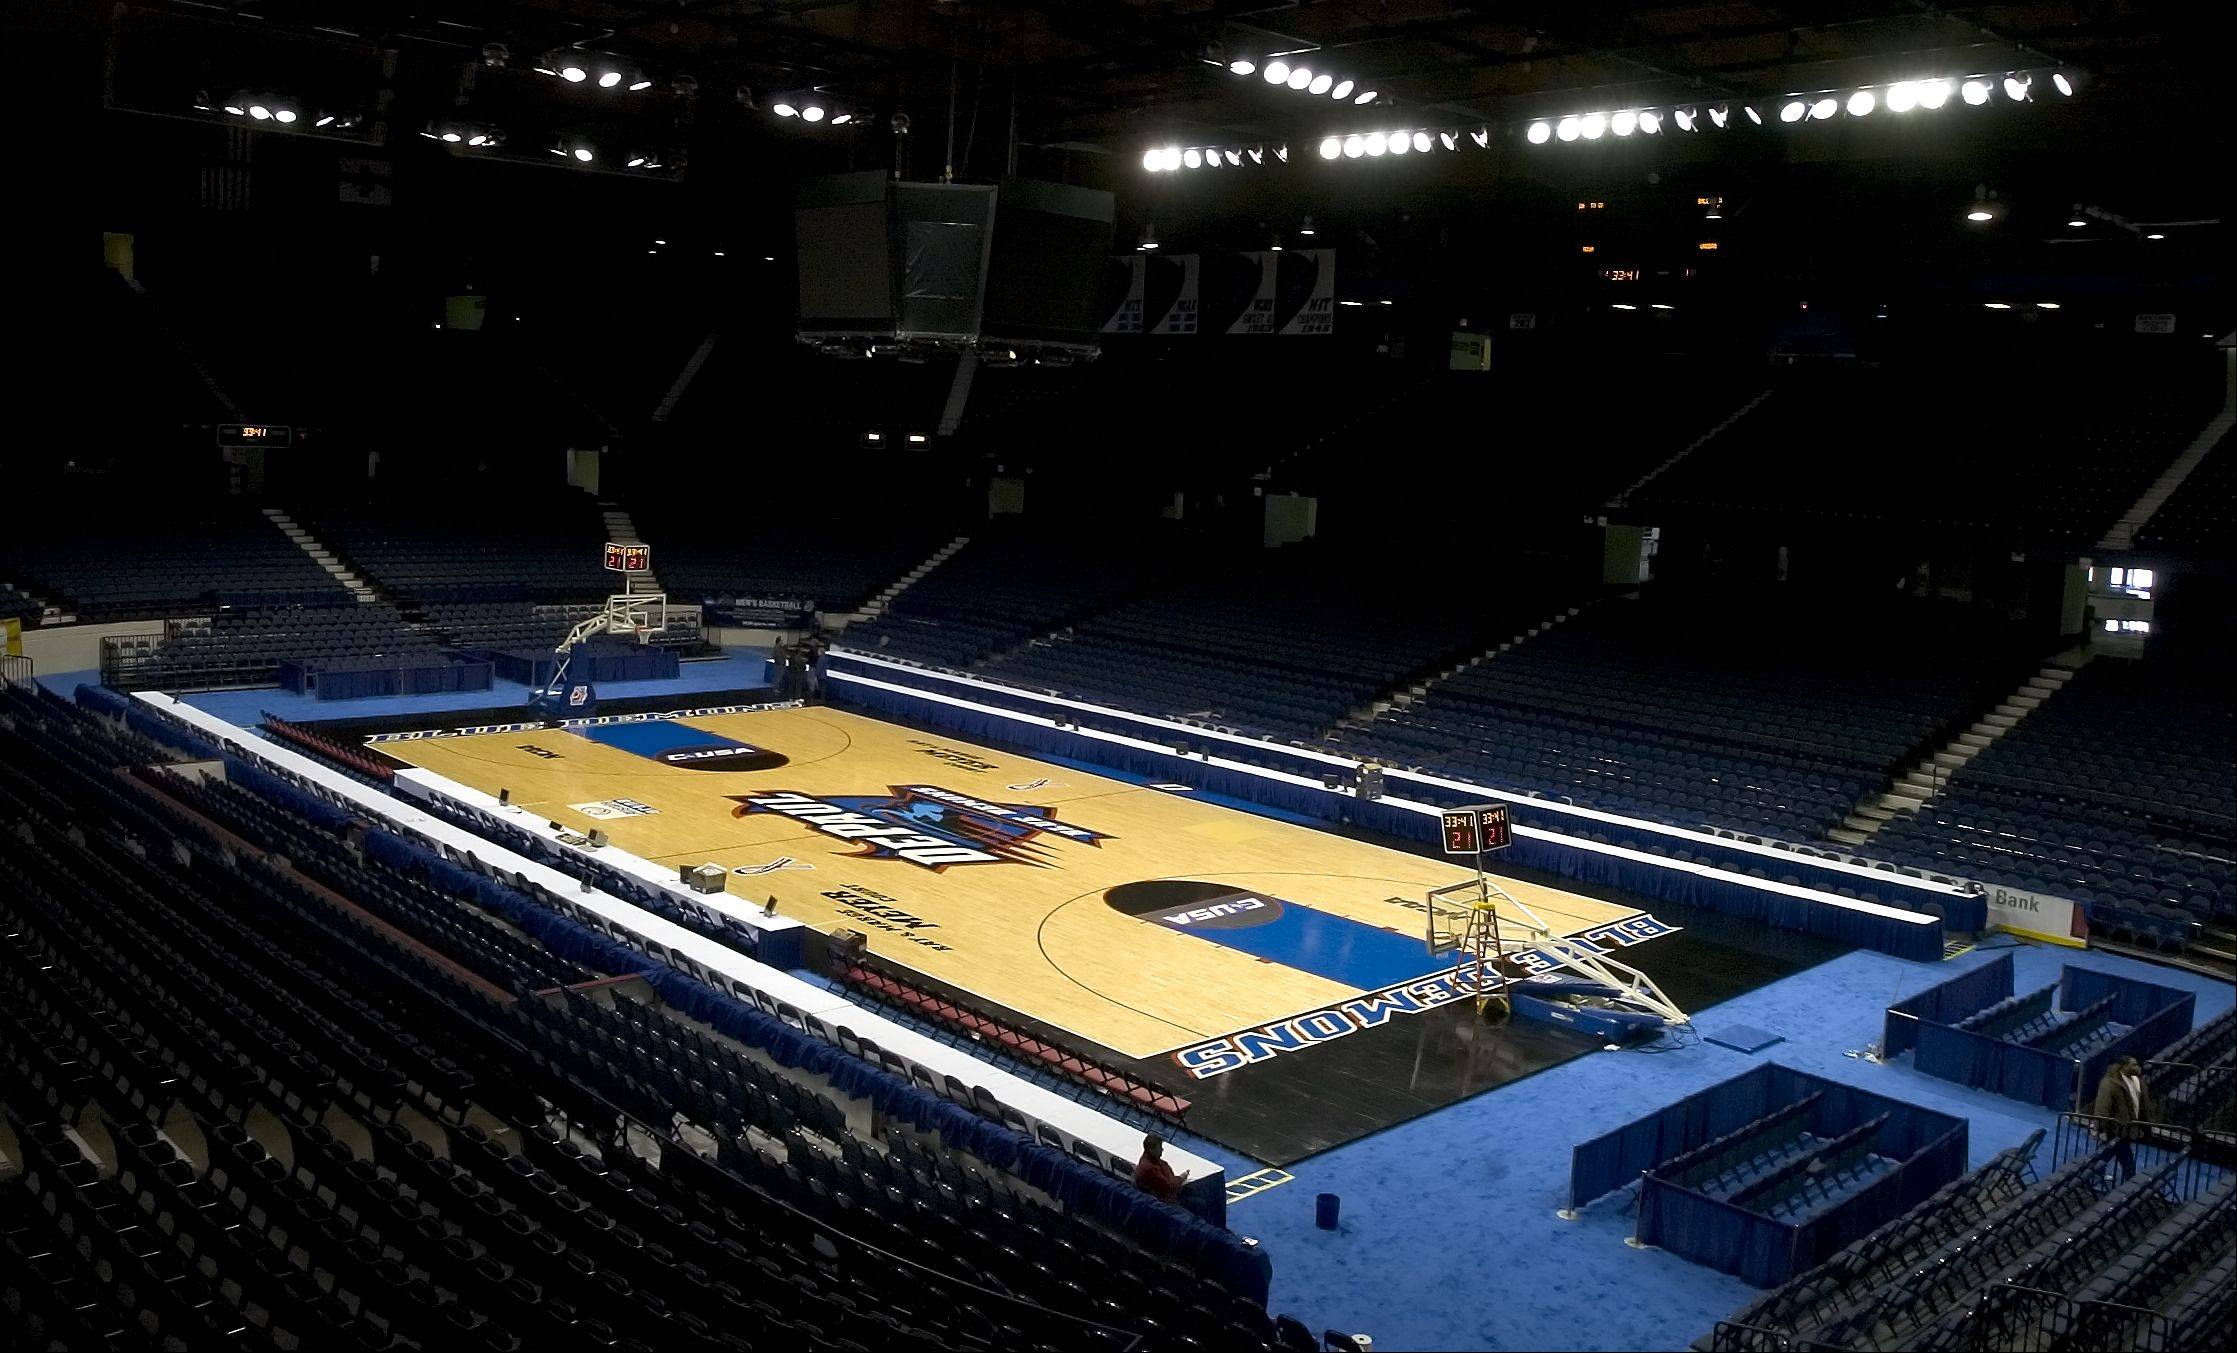 The DePaul University Blue Demons men's basketball team will be moving from the Allstate Arena in Rosemont to a new stadium in Chicago under a deal announced this week by Chicago Mayor Rahm Emanuel.